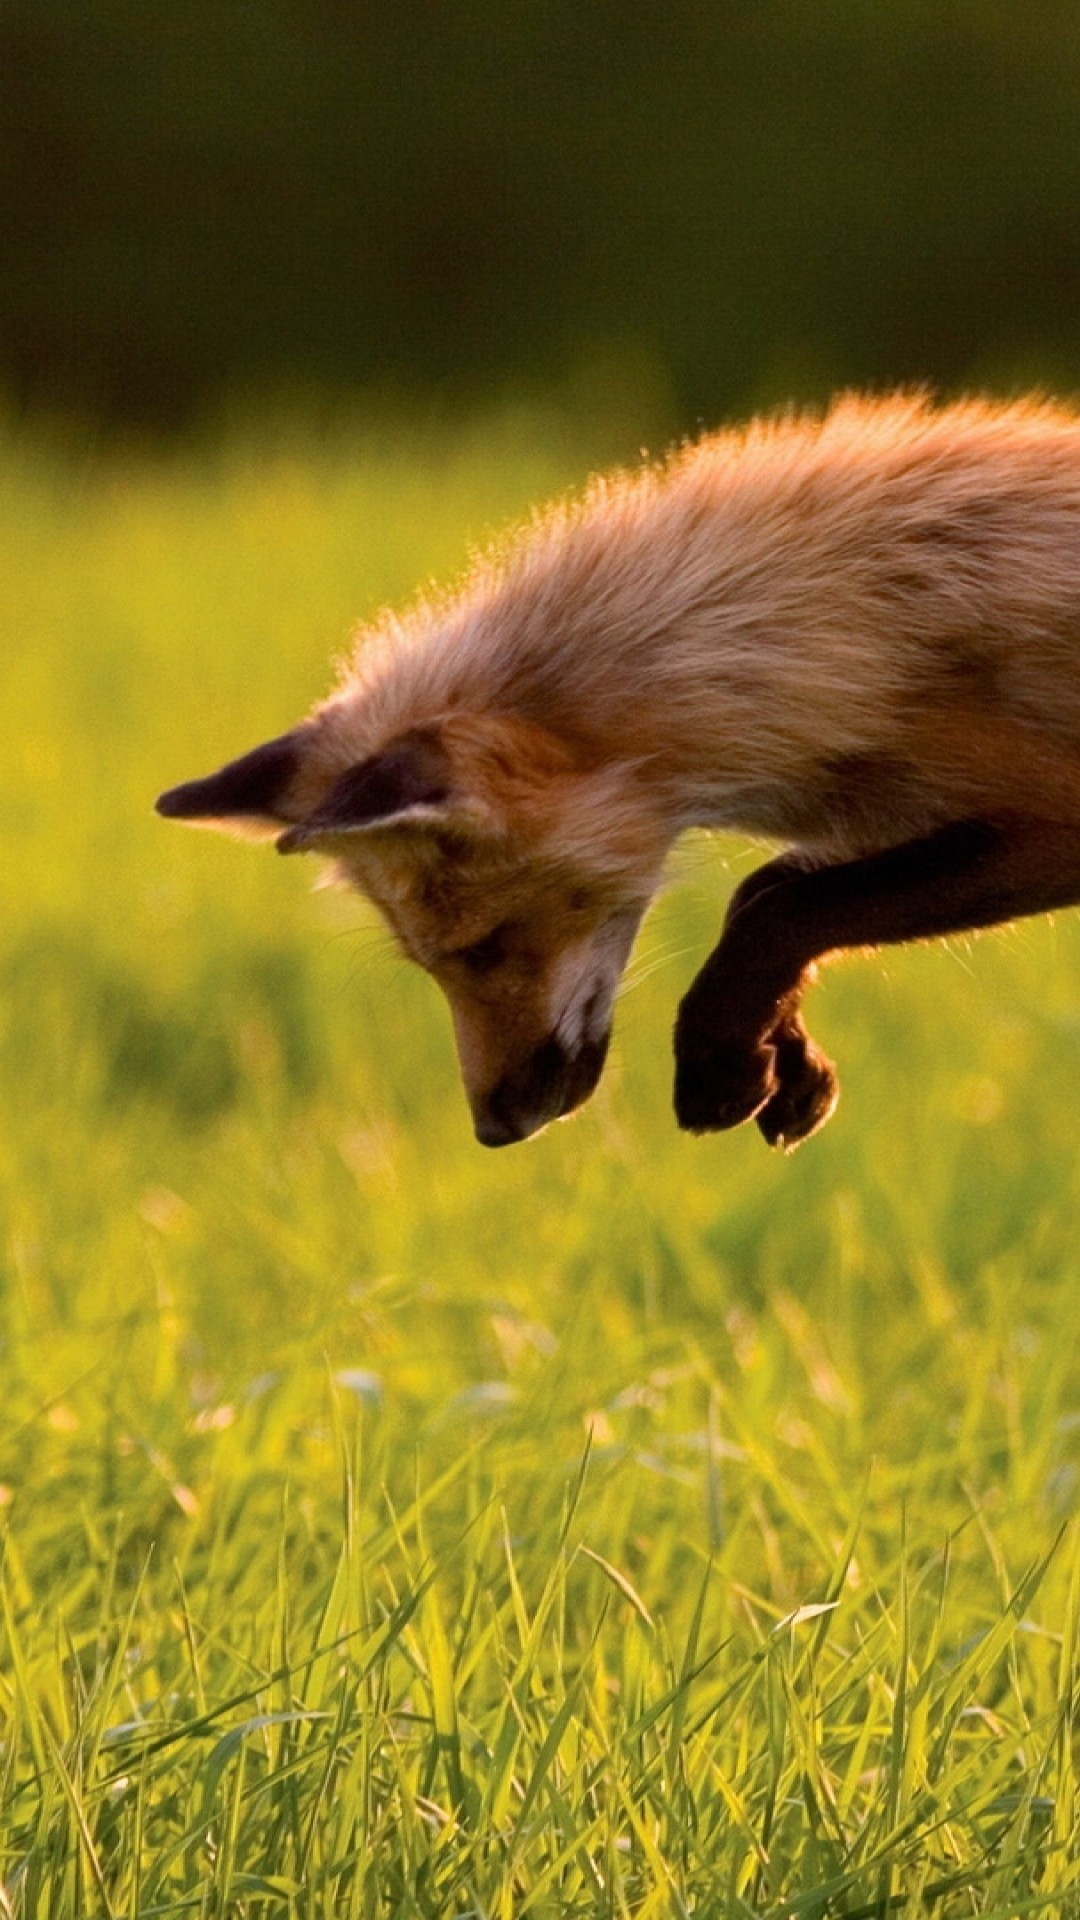 wallpaper red fox  green grass  jumping  sunny day  wild nature  animals  879